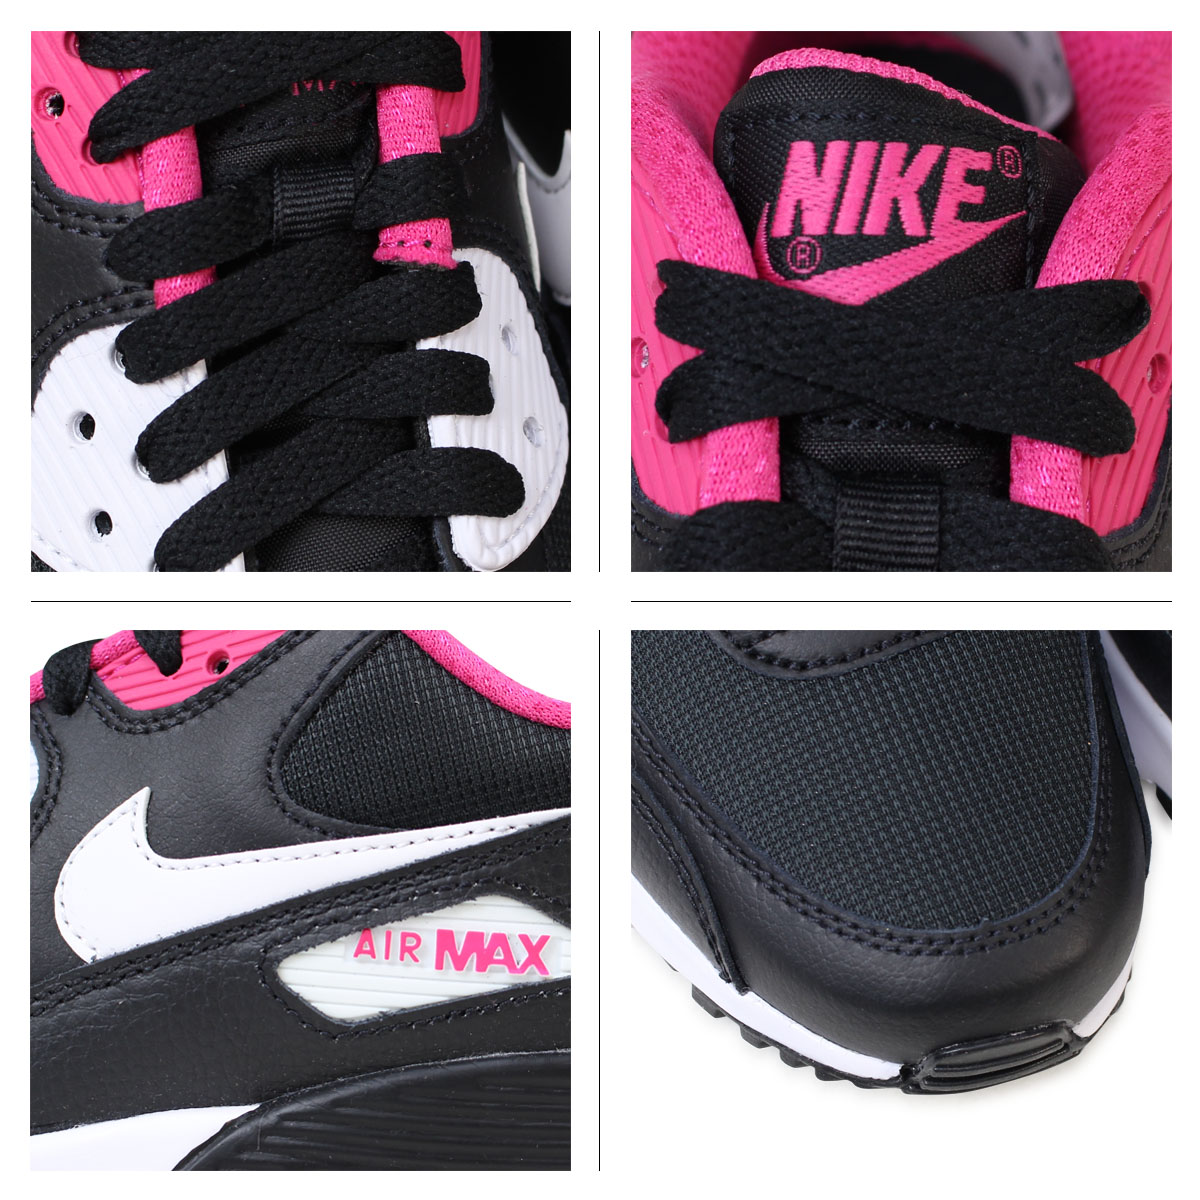 NIKE Air Max Lady's Nike sneakers AIR MAX 90 MESH GS Air Max 833,340 002 shoes black [171]